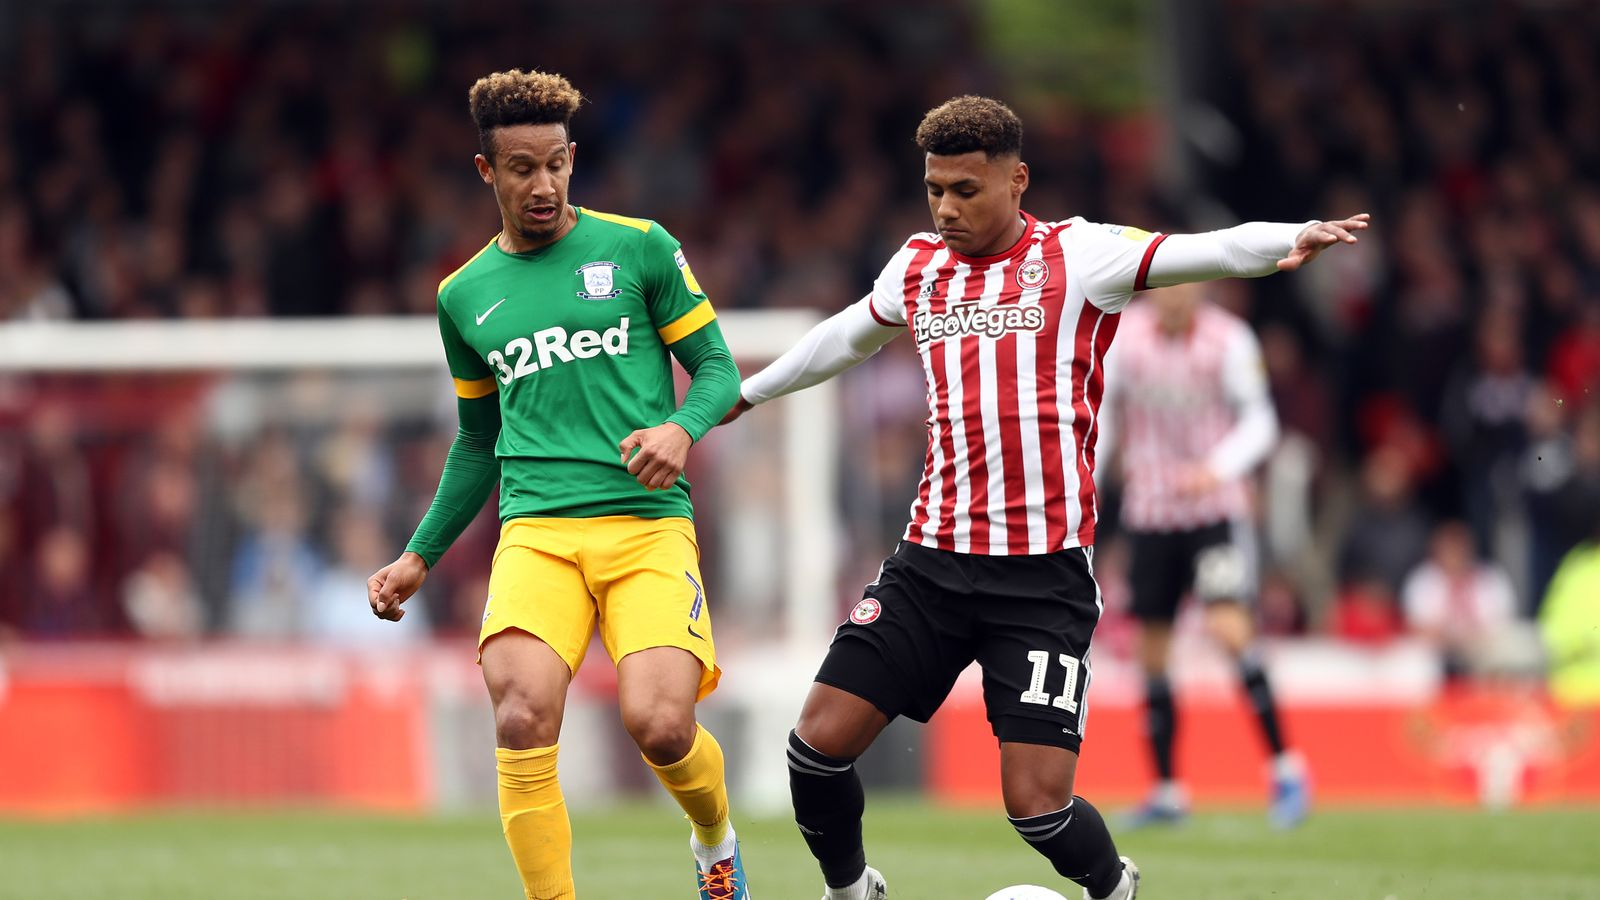 Brentford 3-2 Millwall: Bees earn stunning late comeback win